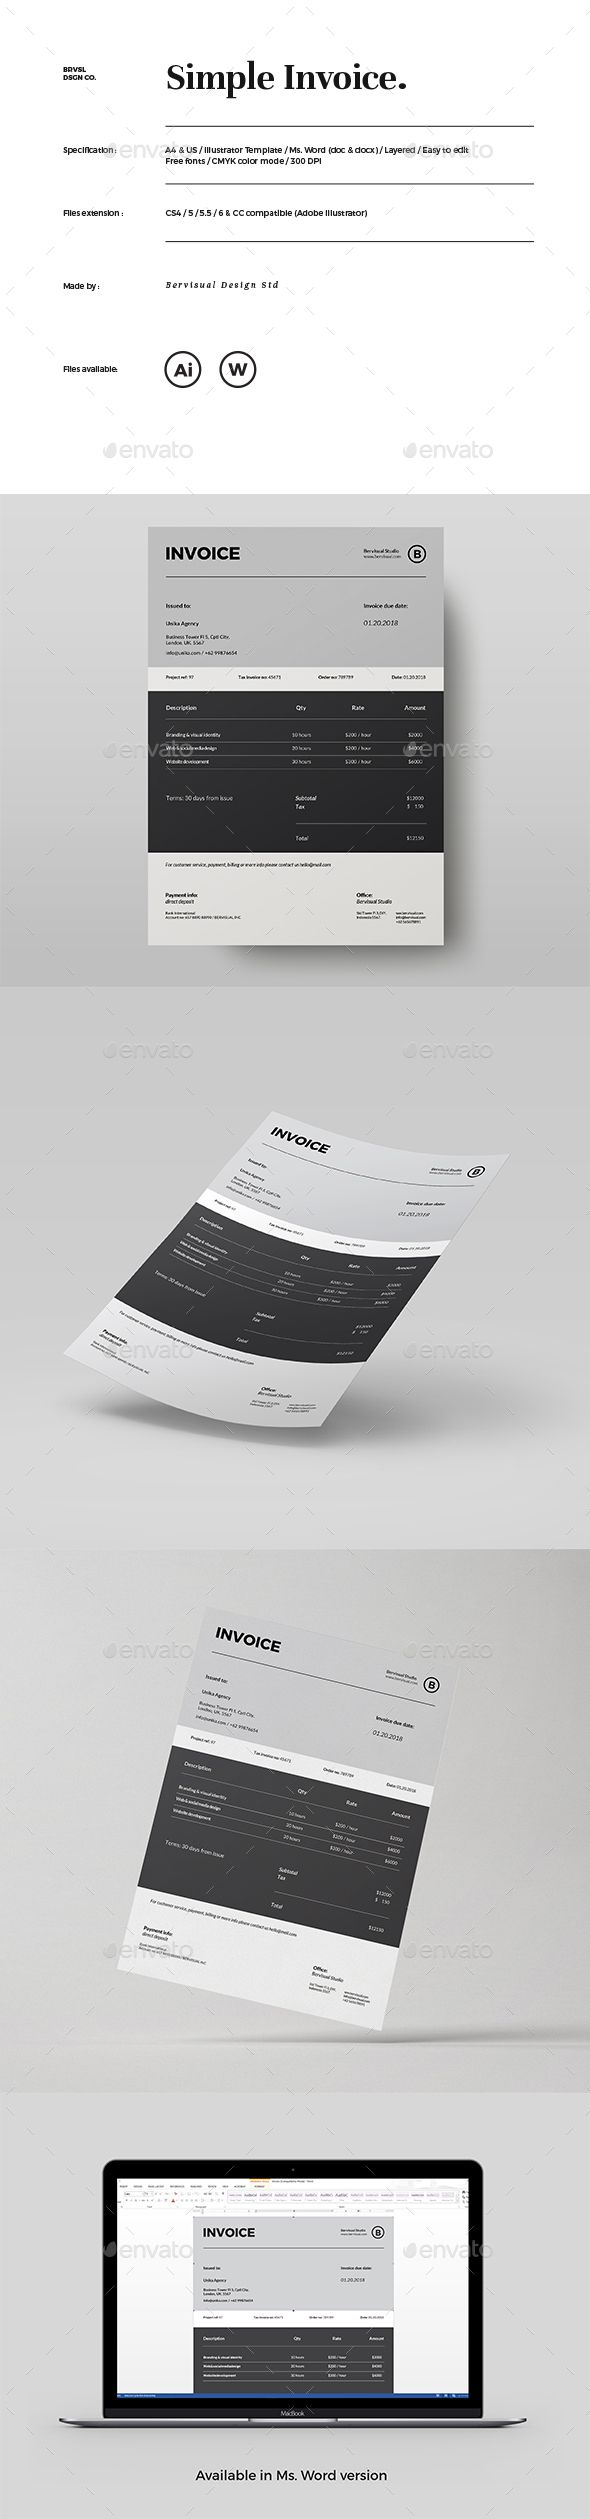 Simple Invoice   Template  Proposal templates and Adobe illustrator Simple Invoice Template AI  EPS  DOCX   DOC   A4 and US Letter Size